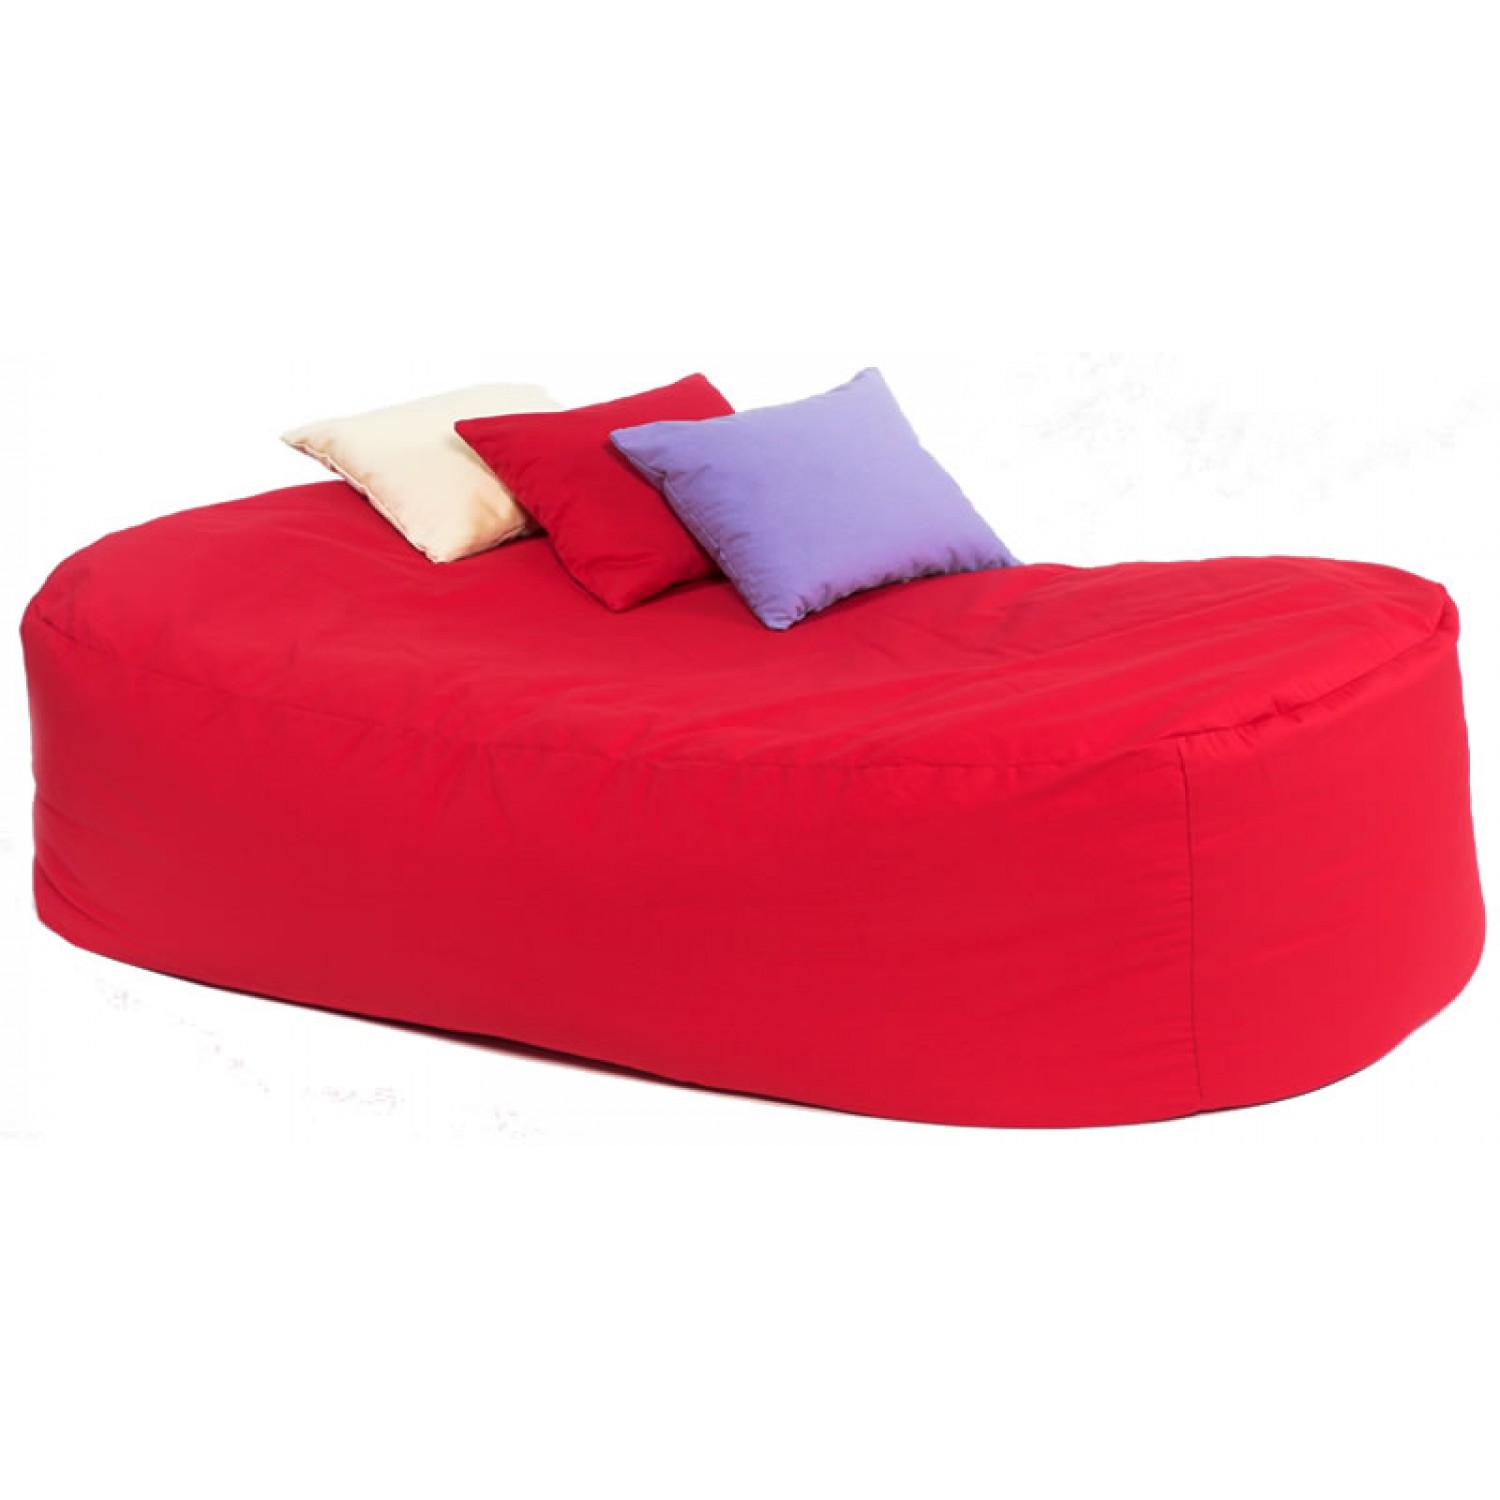 5ft bed sofa cotton for Sofa bed 5ft